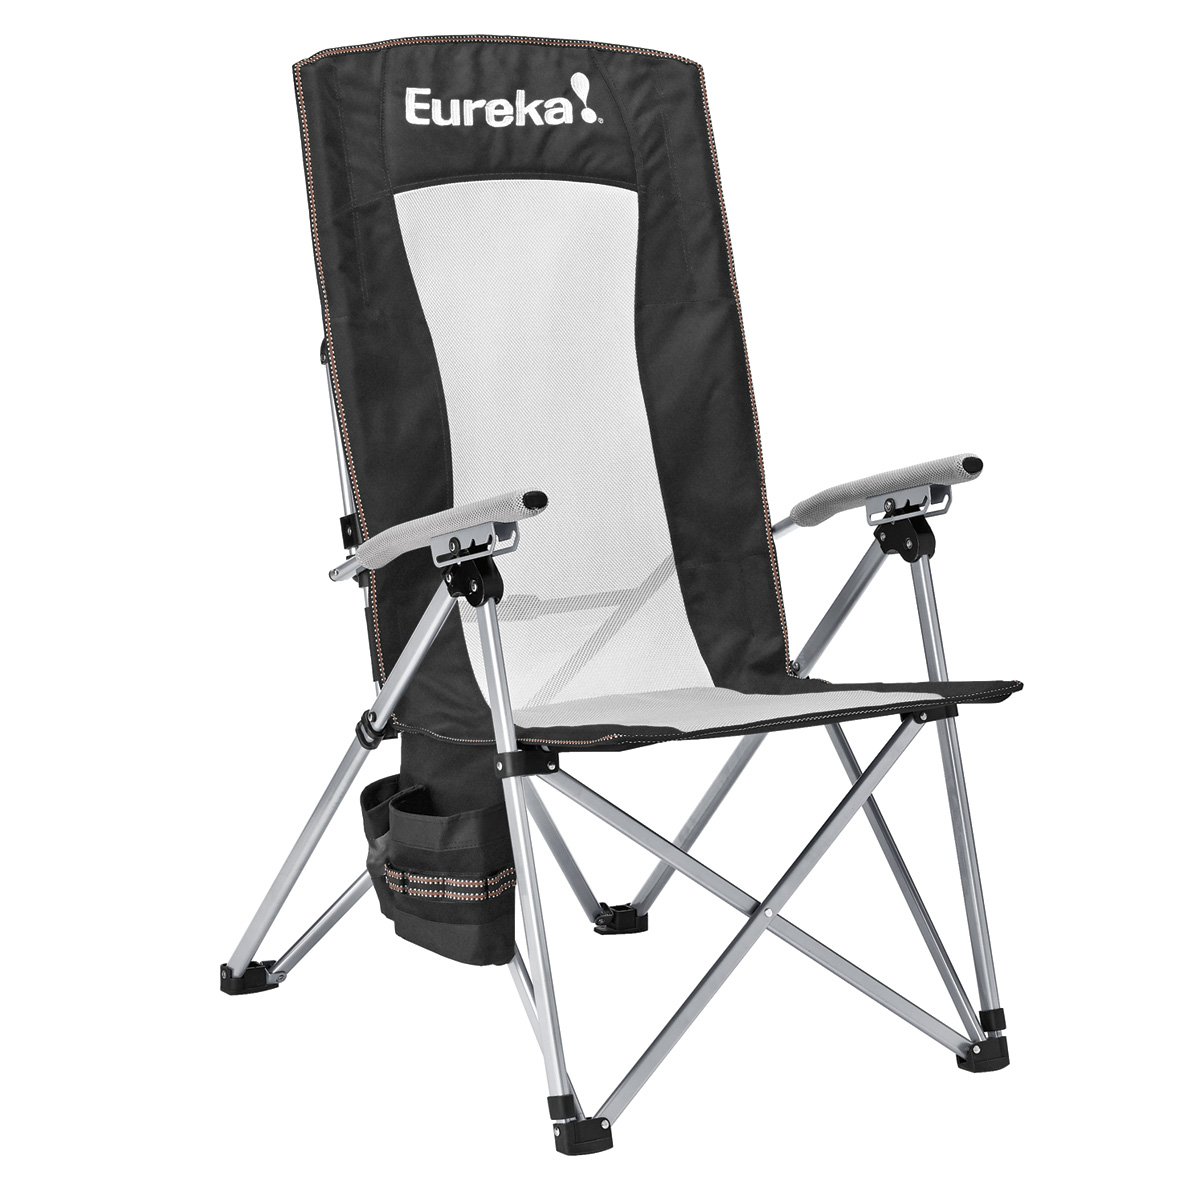 Folding Camping High Chair Recliner Camp Chair Eureka